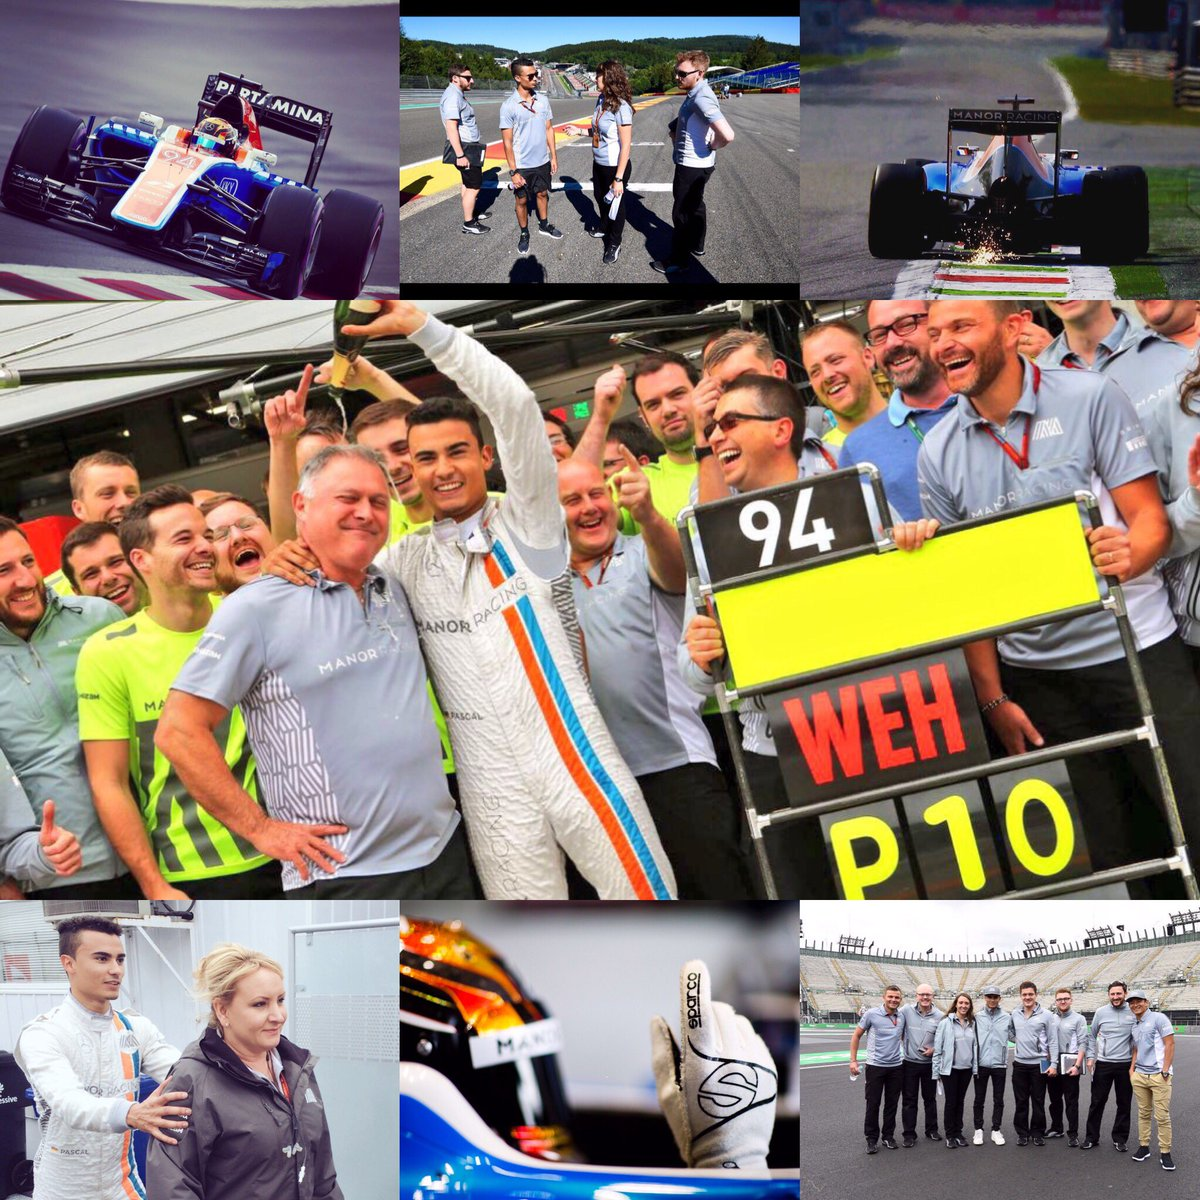 Thank you very much @ManorRacing for the great season 2016! Wish all of you all the best!  1 Point - 5xQ2! Hope to see you in the paddock! https://t.co/6CbjEdLUPI